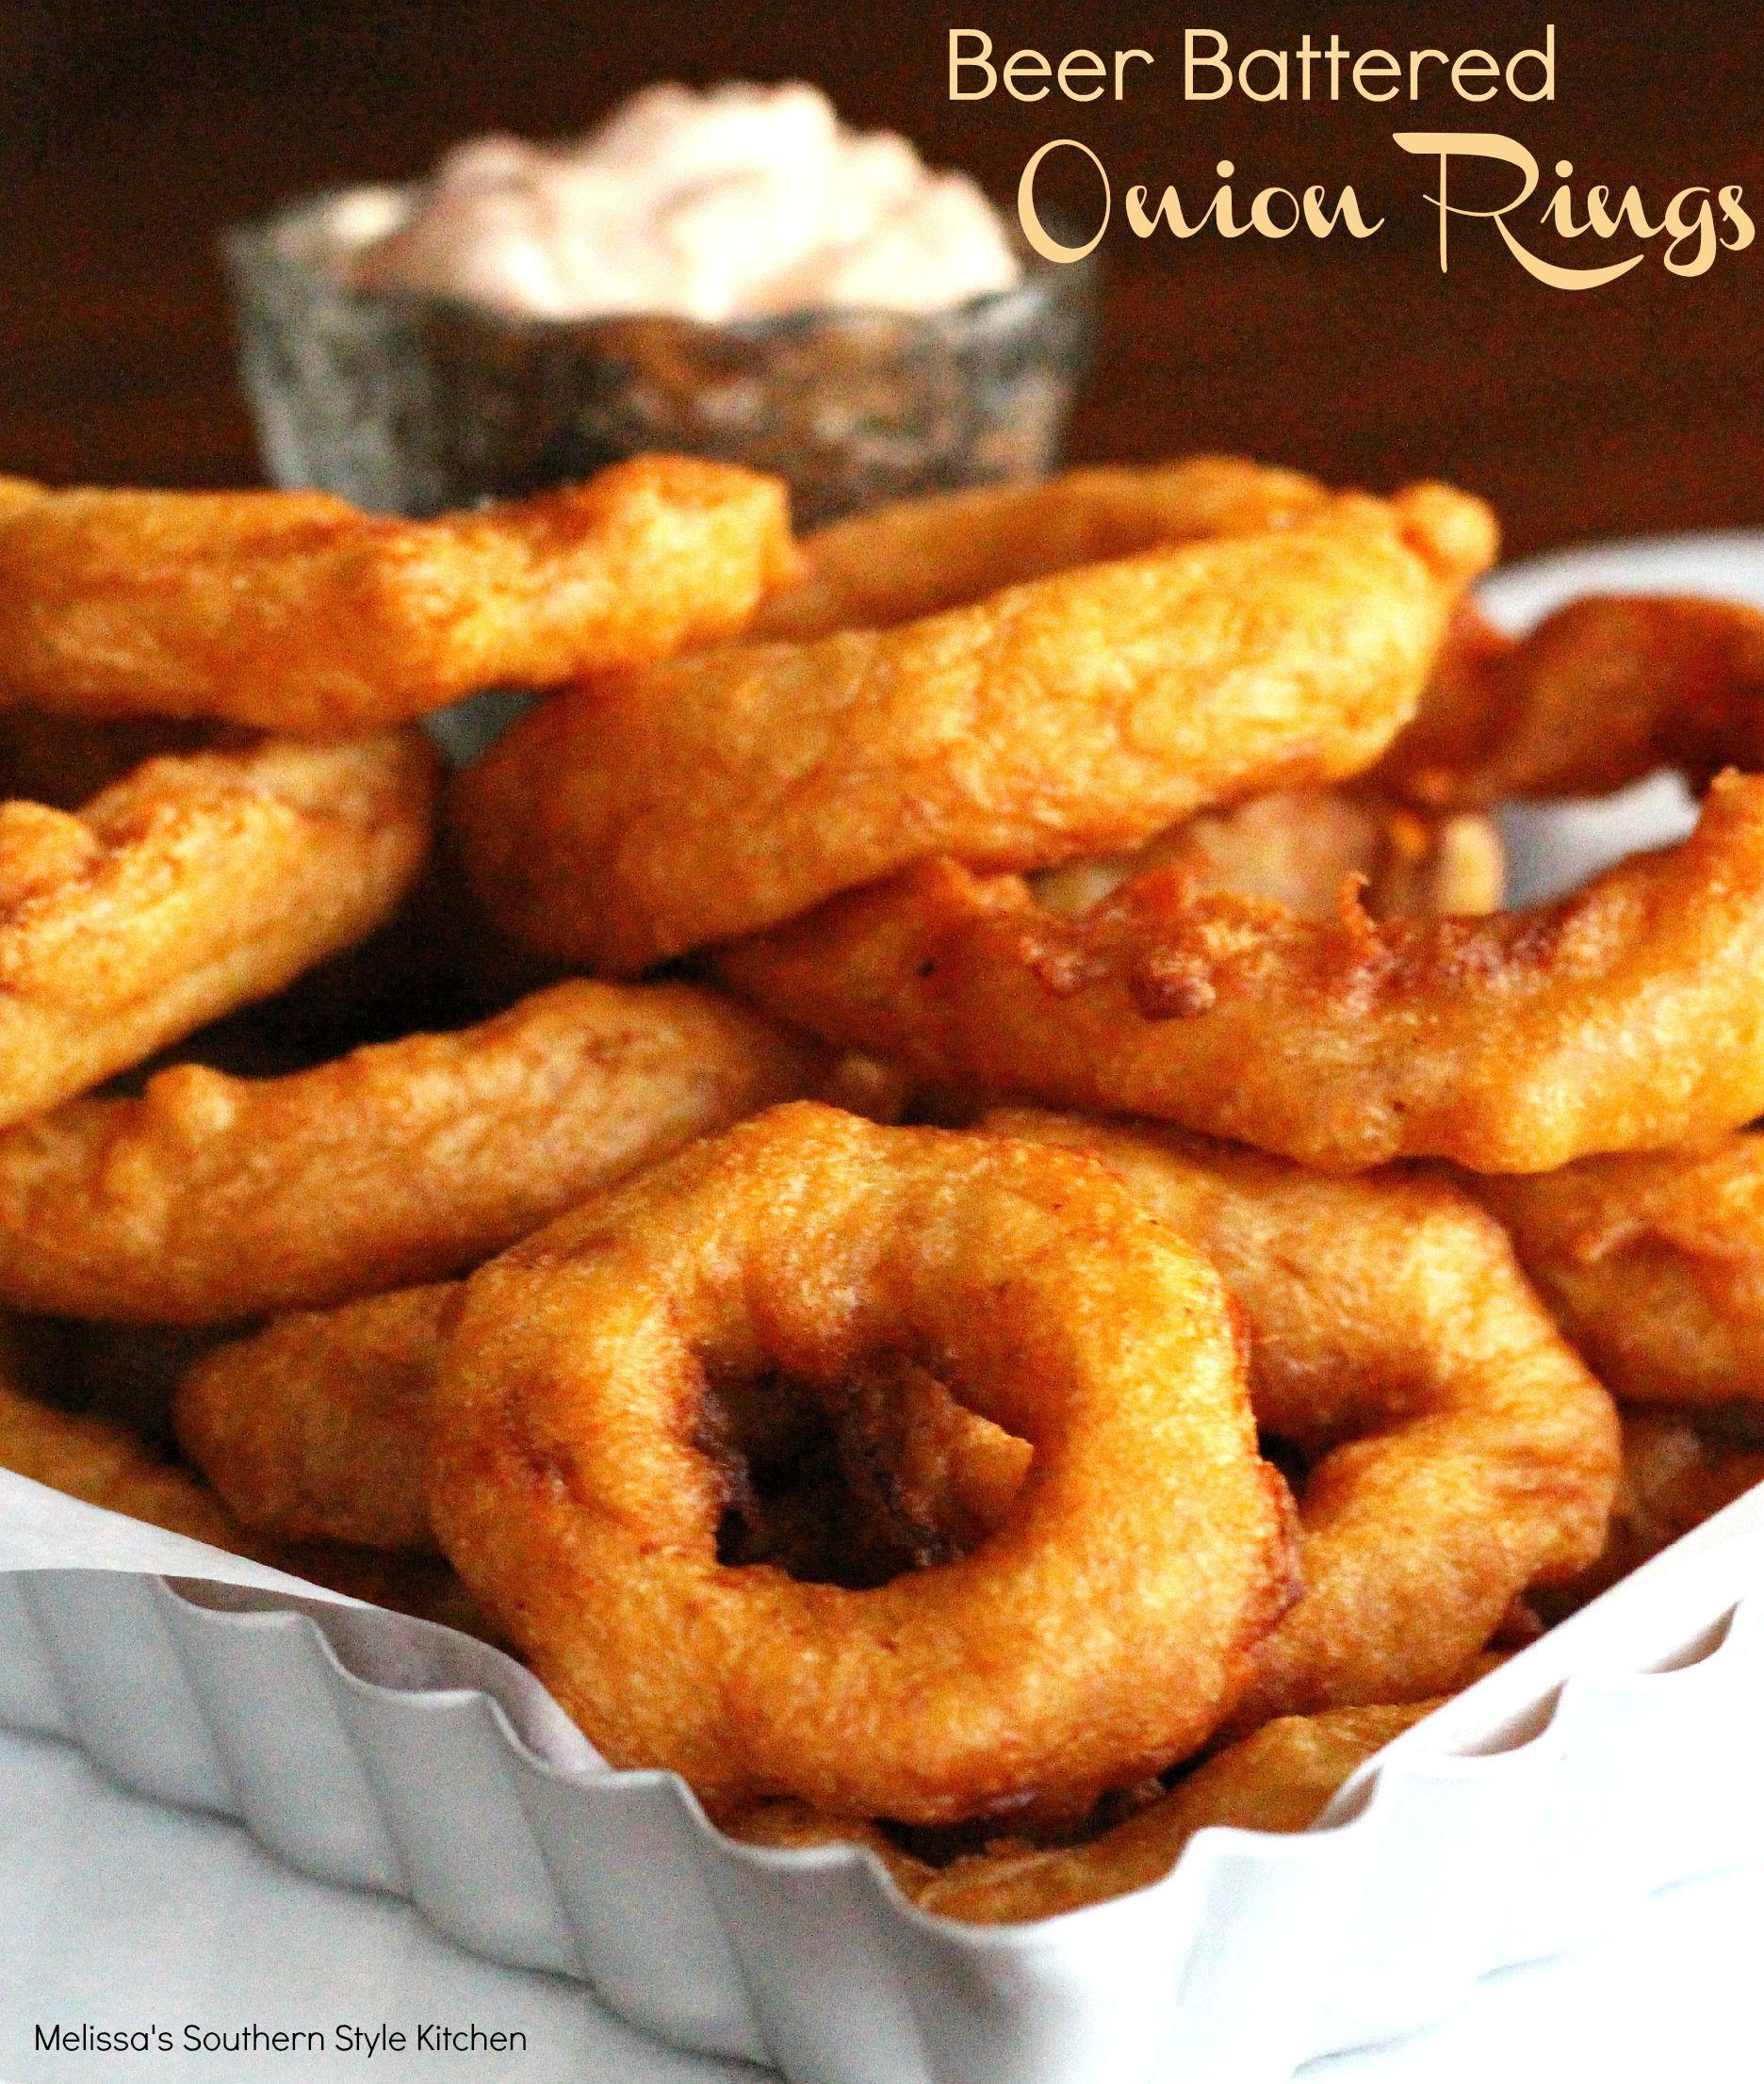 inc onion licious dehli foods rings dipped neal brothers